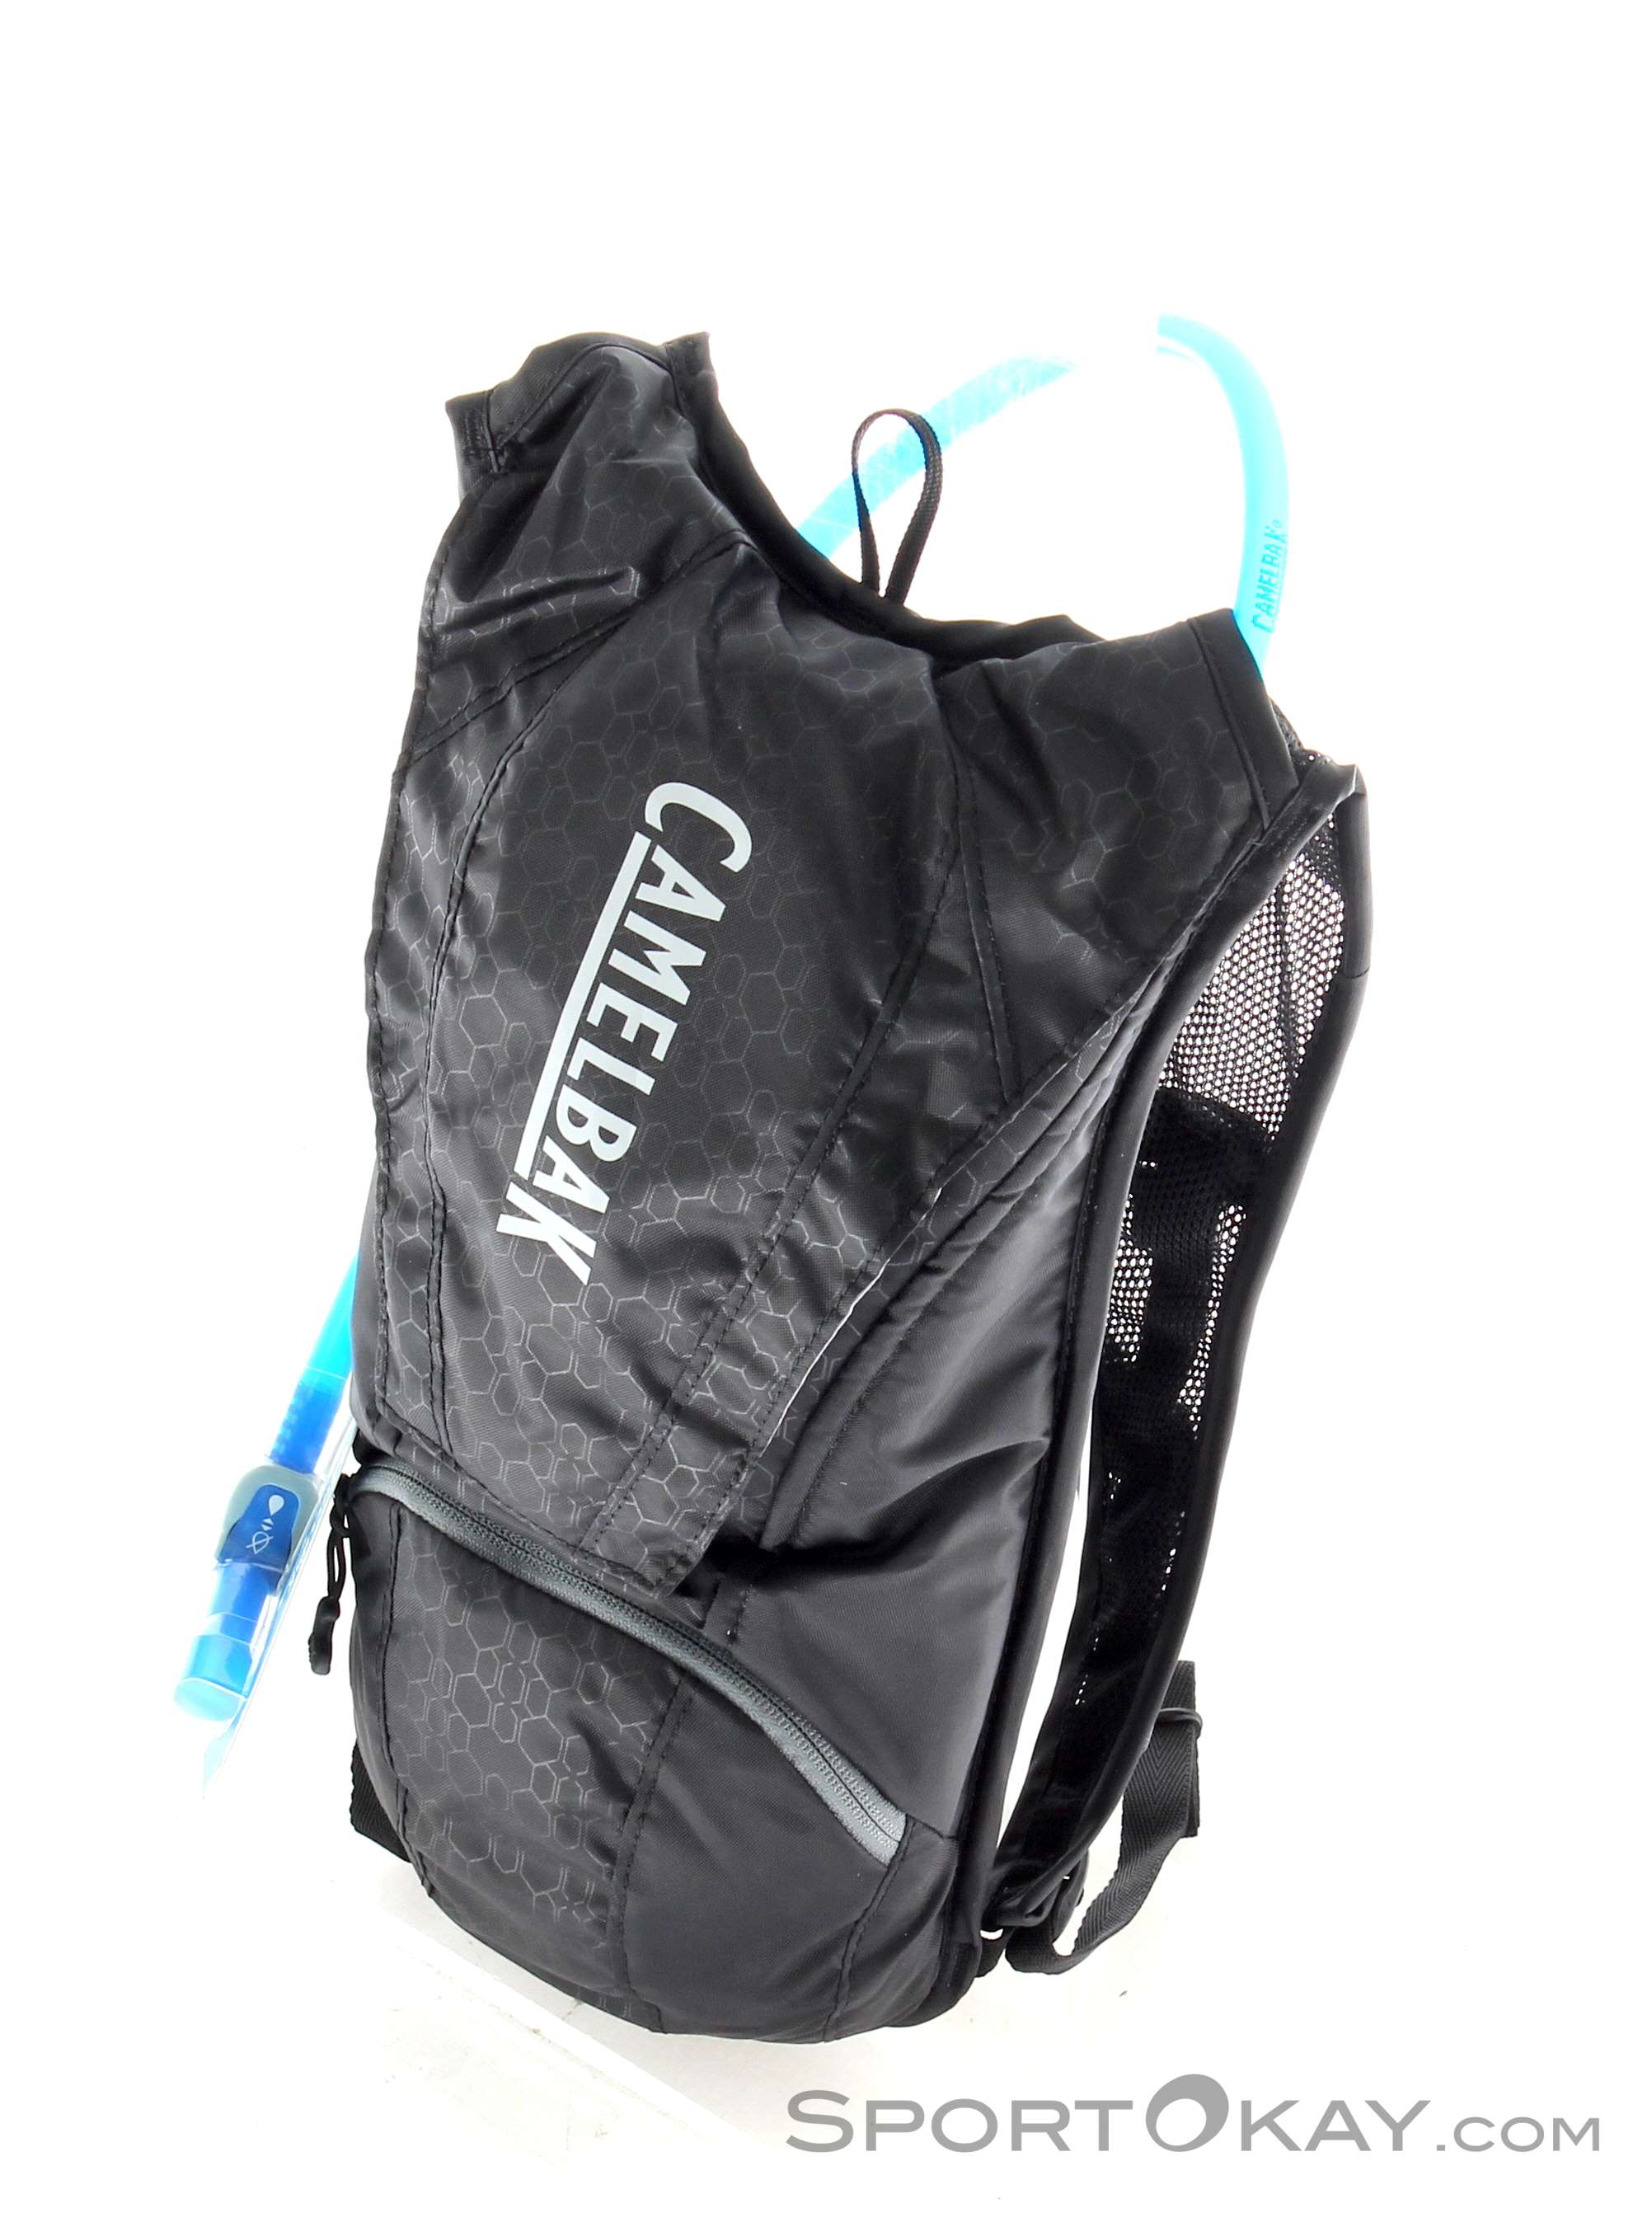 top brands wholesale sales pretty nice Camelbak Classic 2l Bike Backpack with Hydration System - Bike ...